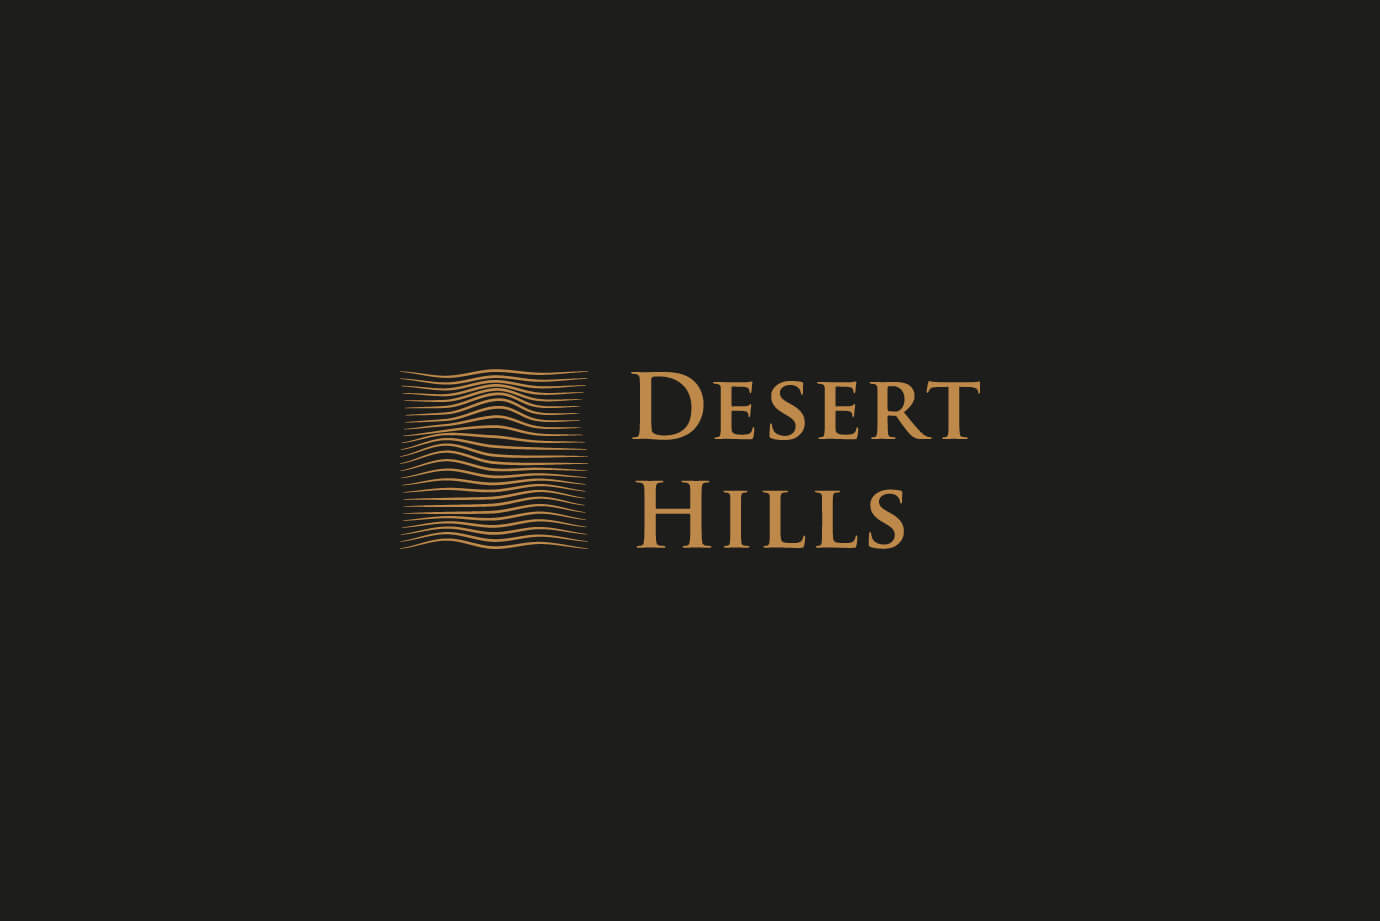 Desert Hill Logo Design